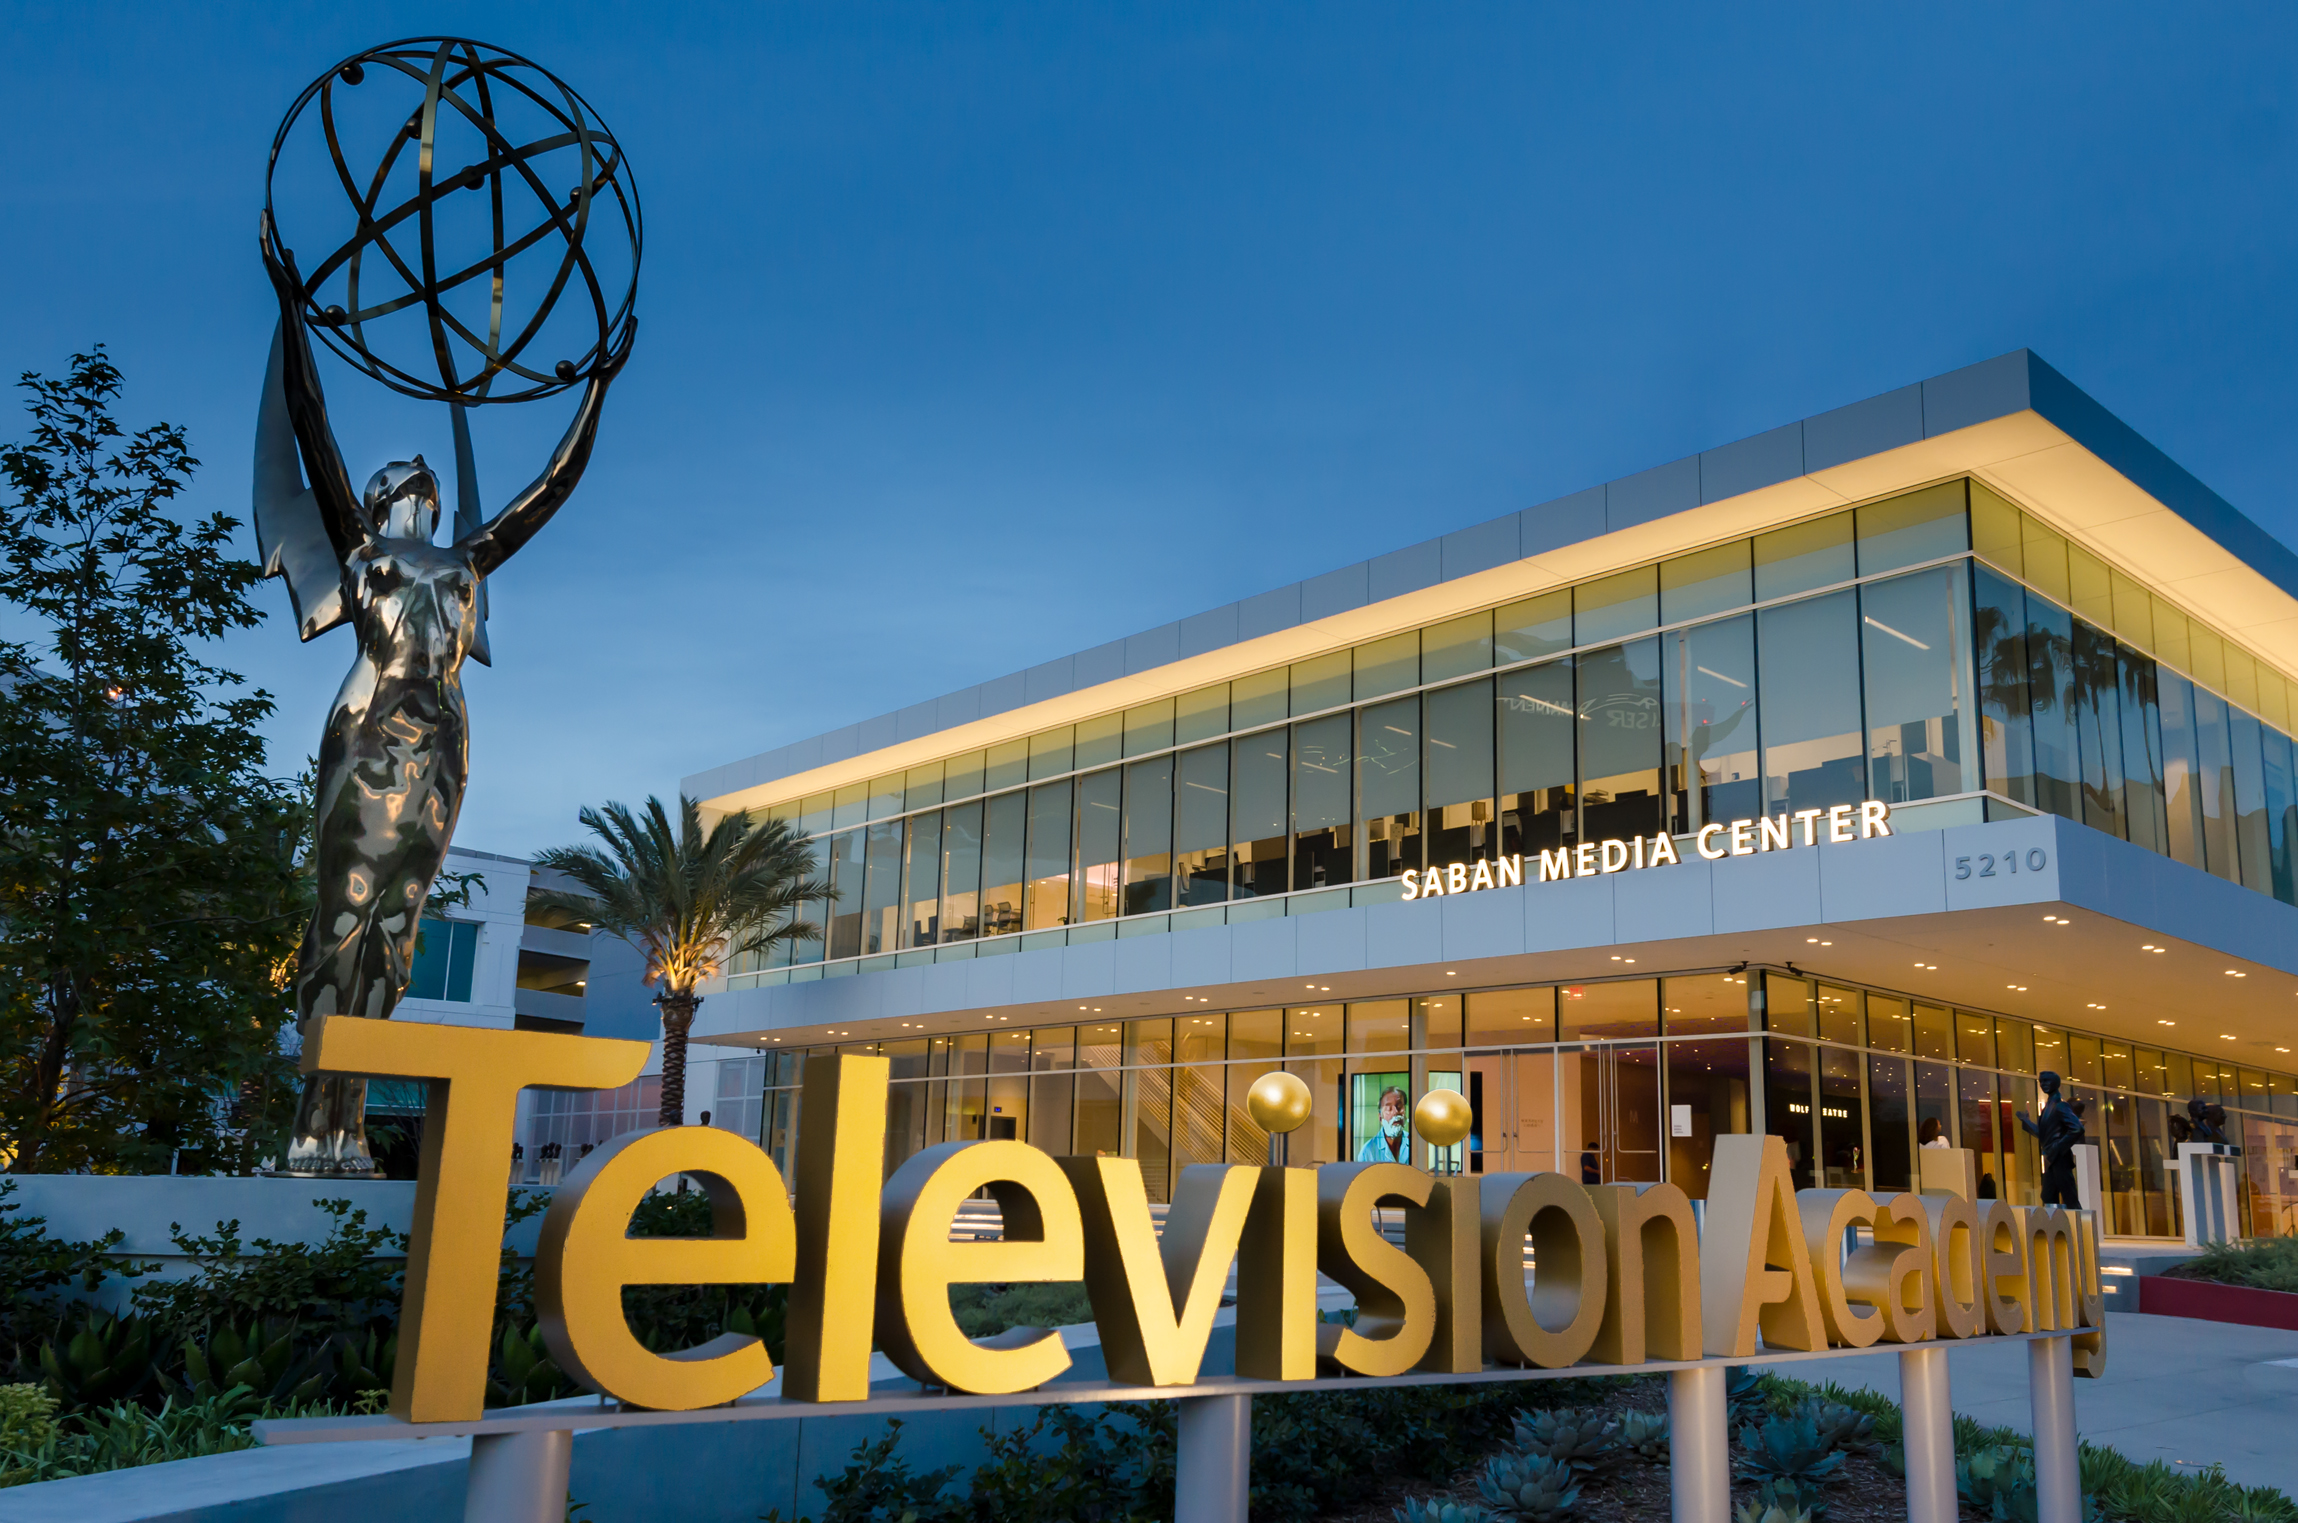 Television Academy_Ground Sign-2.jpg